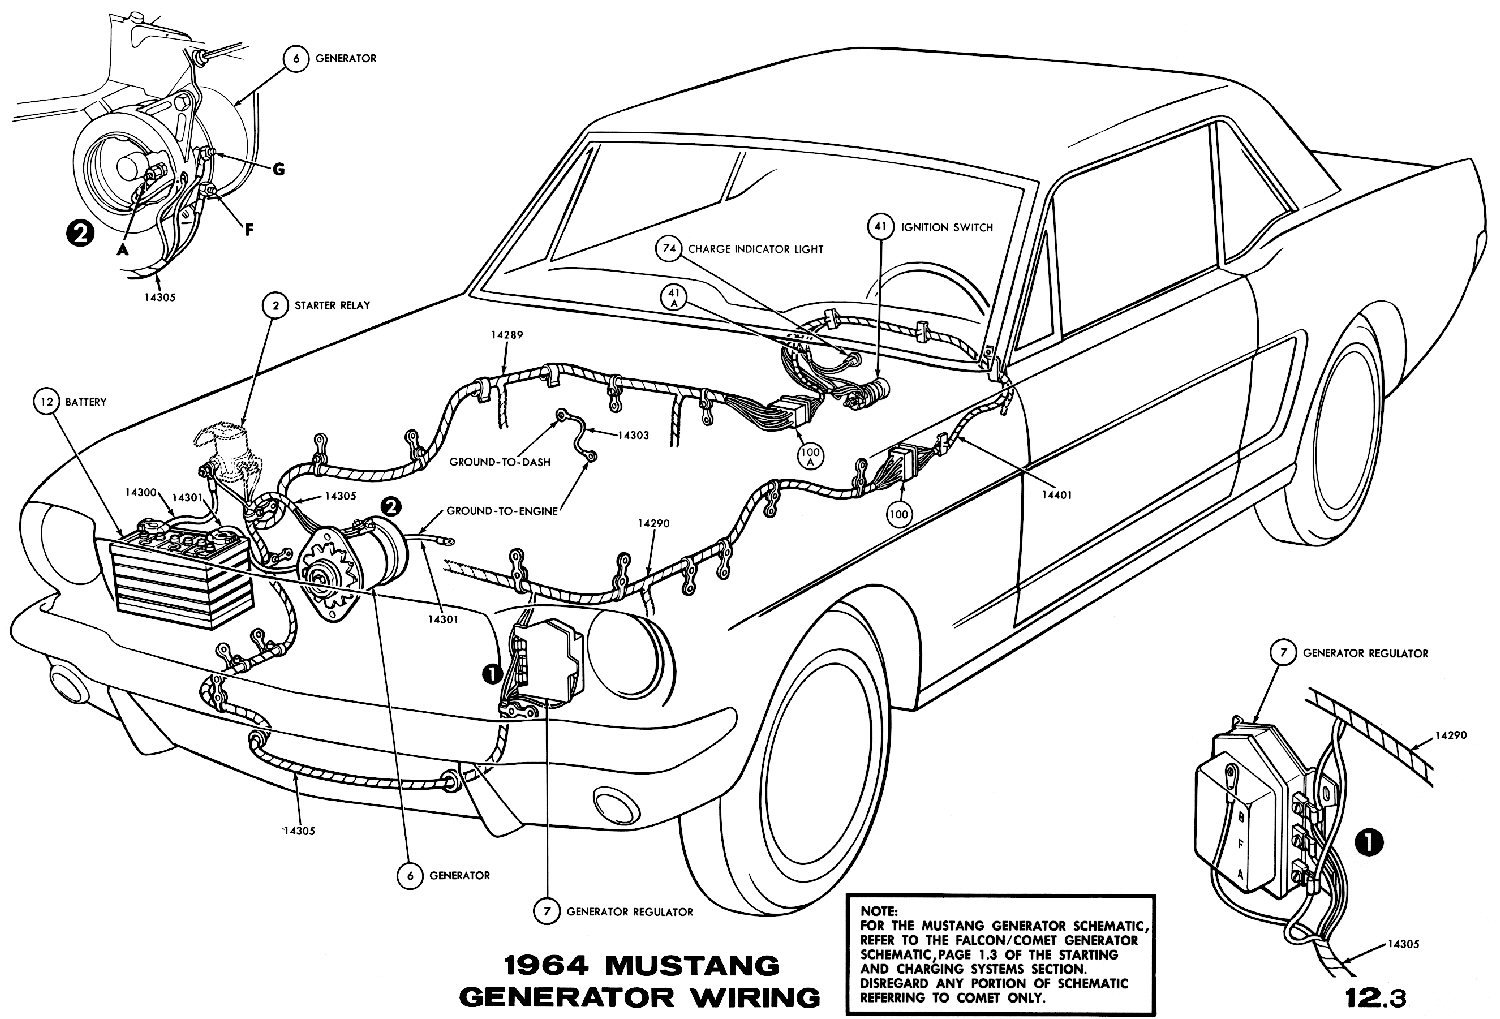 1955 Ford Fairlane Wiring Diagram Generator Library 1956 Car 1967 Mustang Voltage Regulator Data Thunderbird